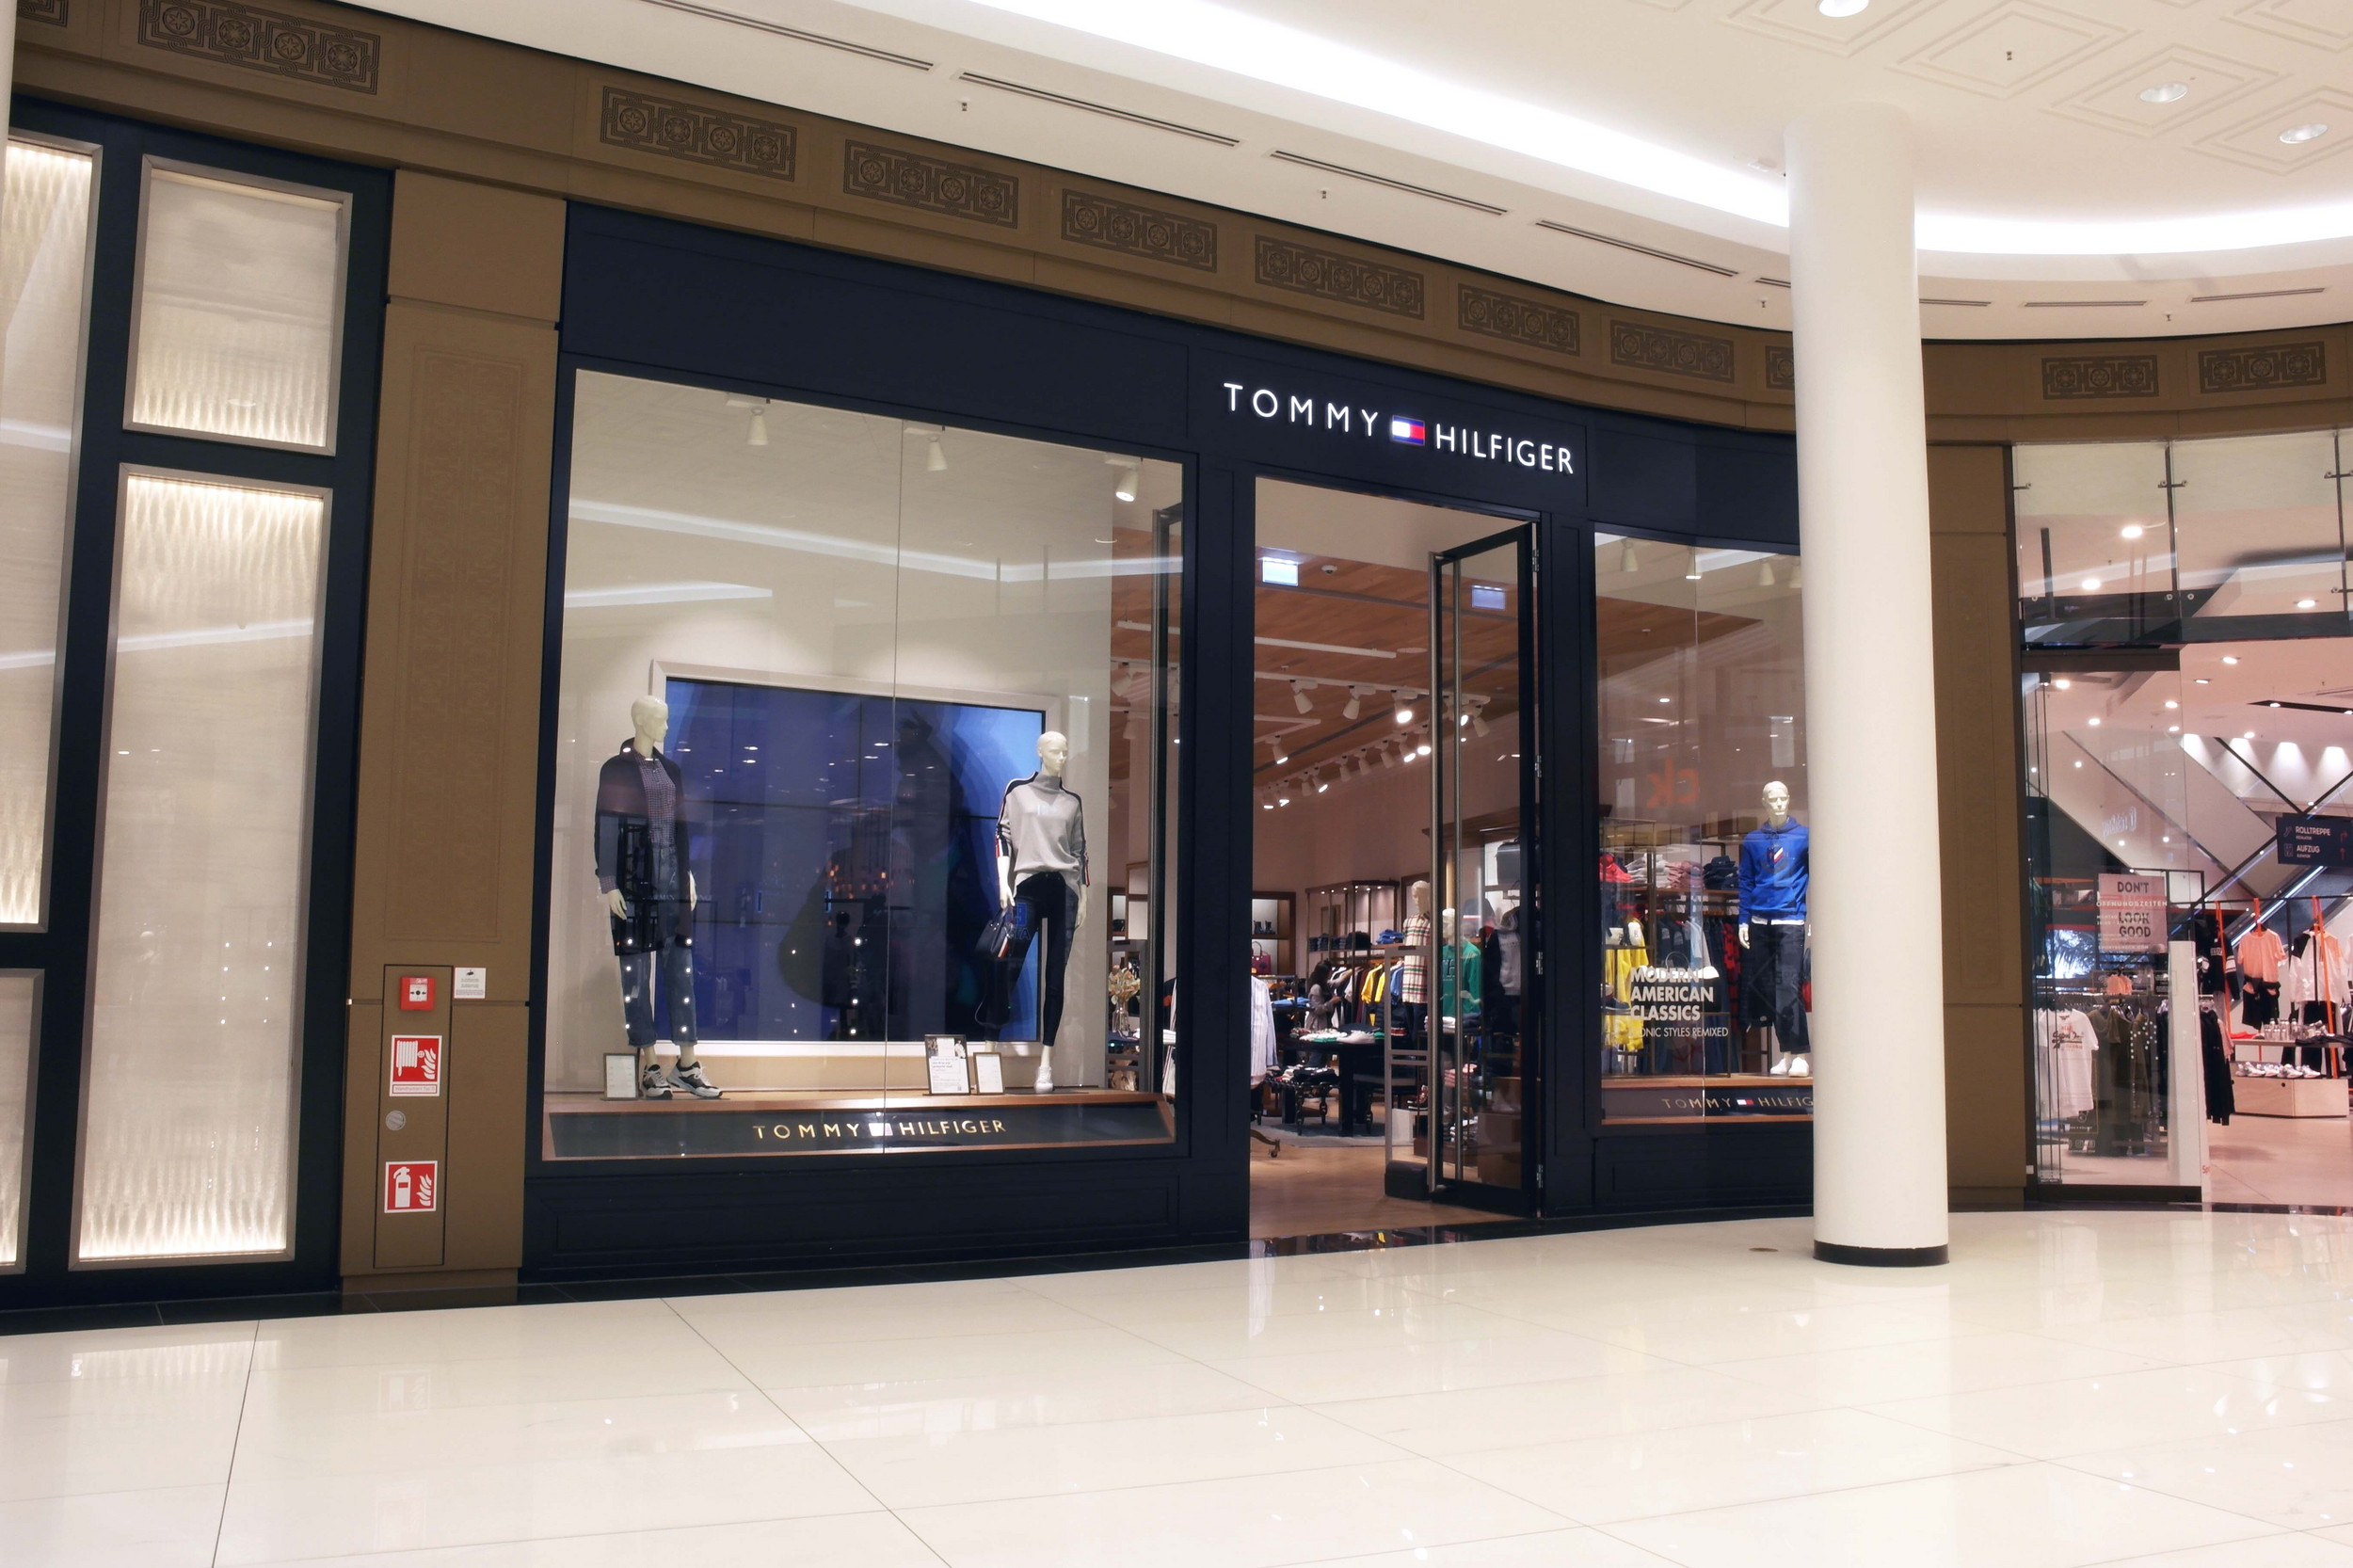 Tommy Hilfiger at the Mall of Berlin